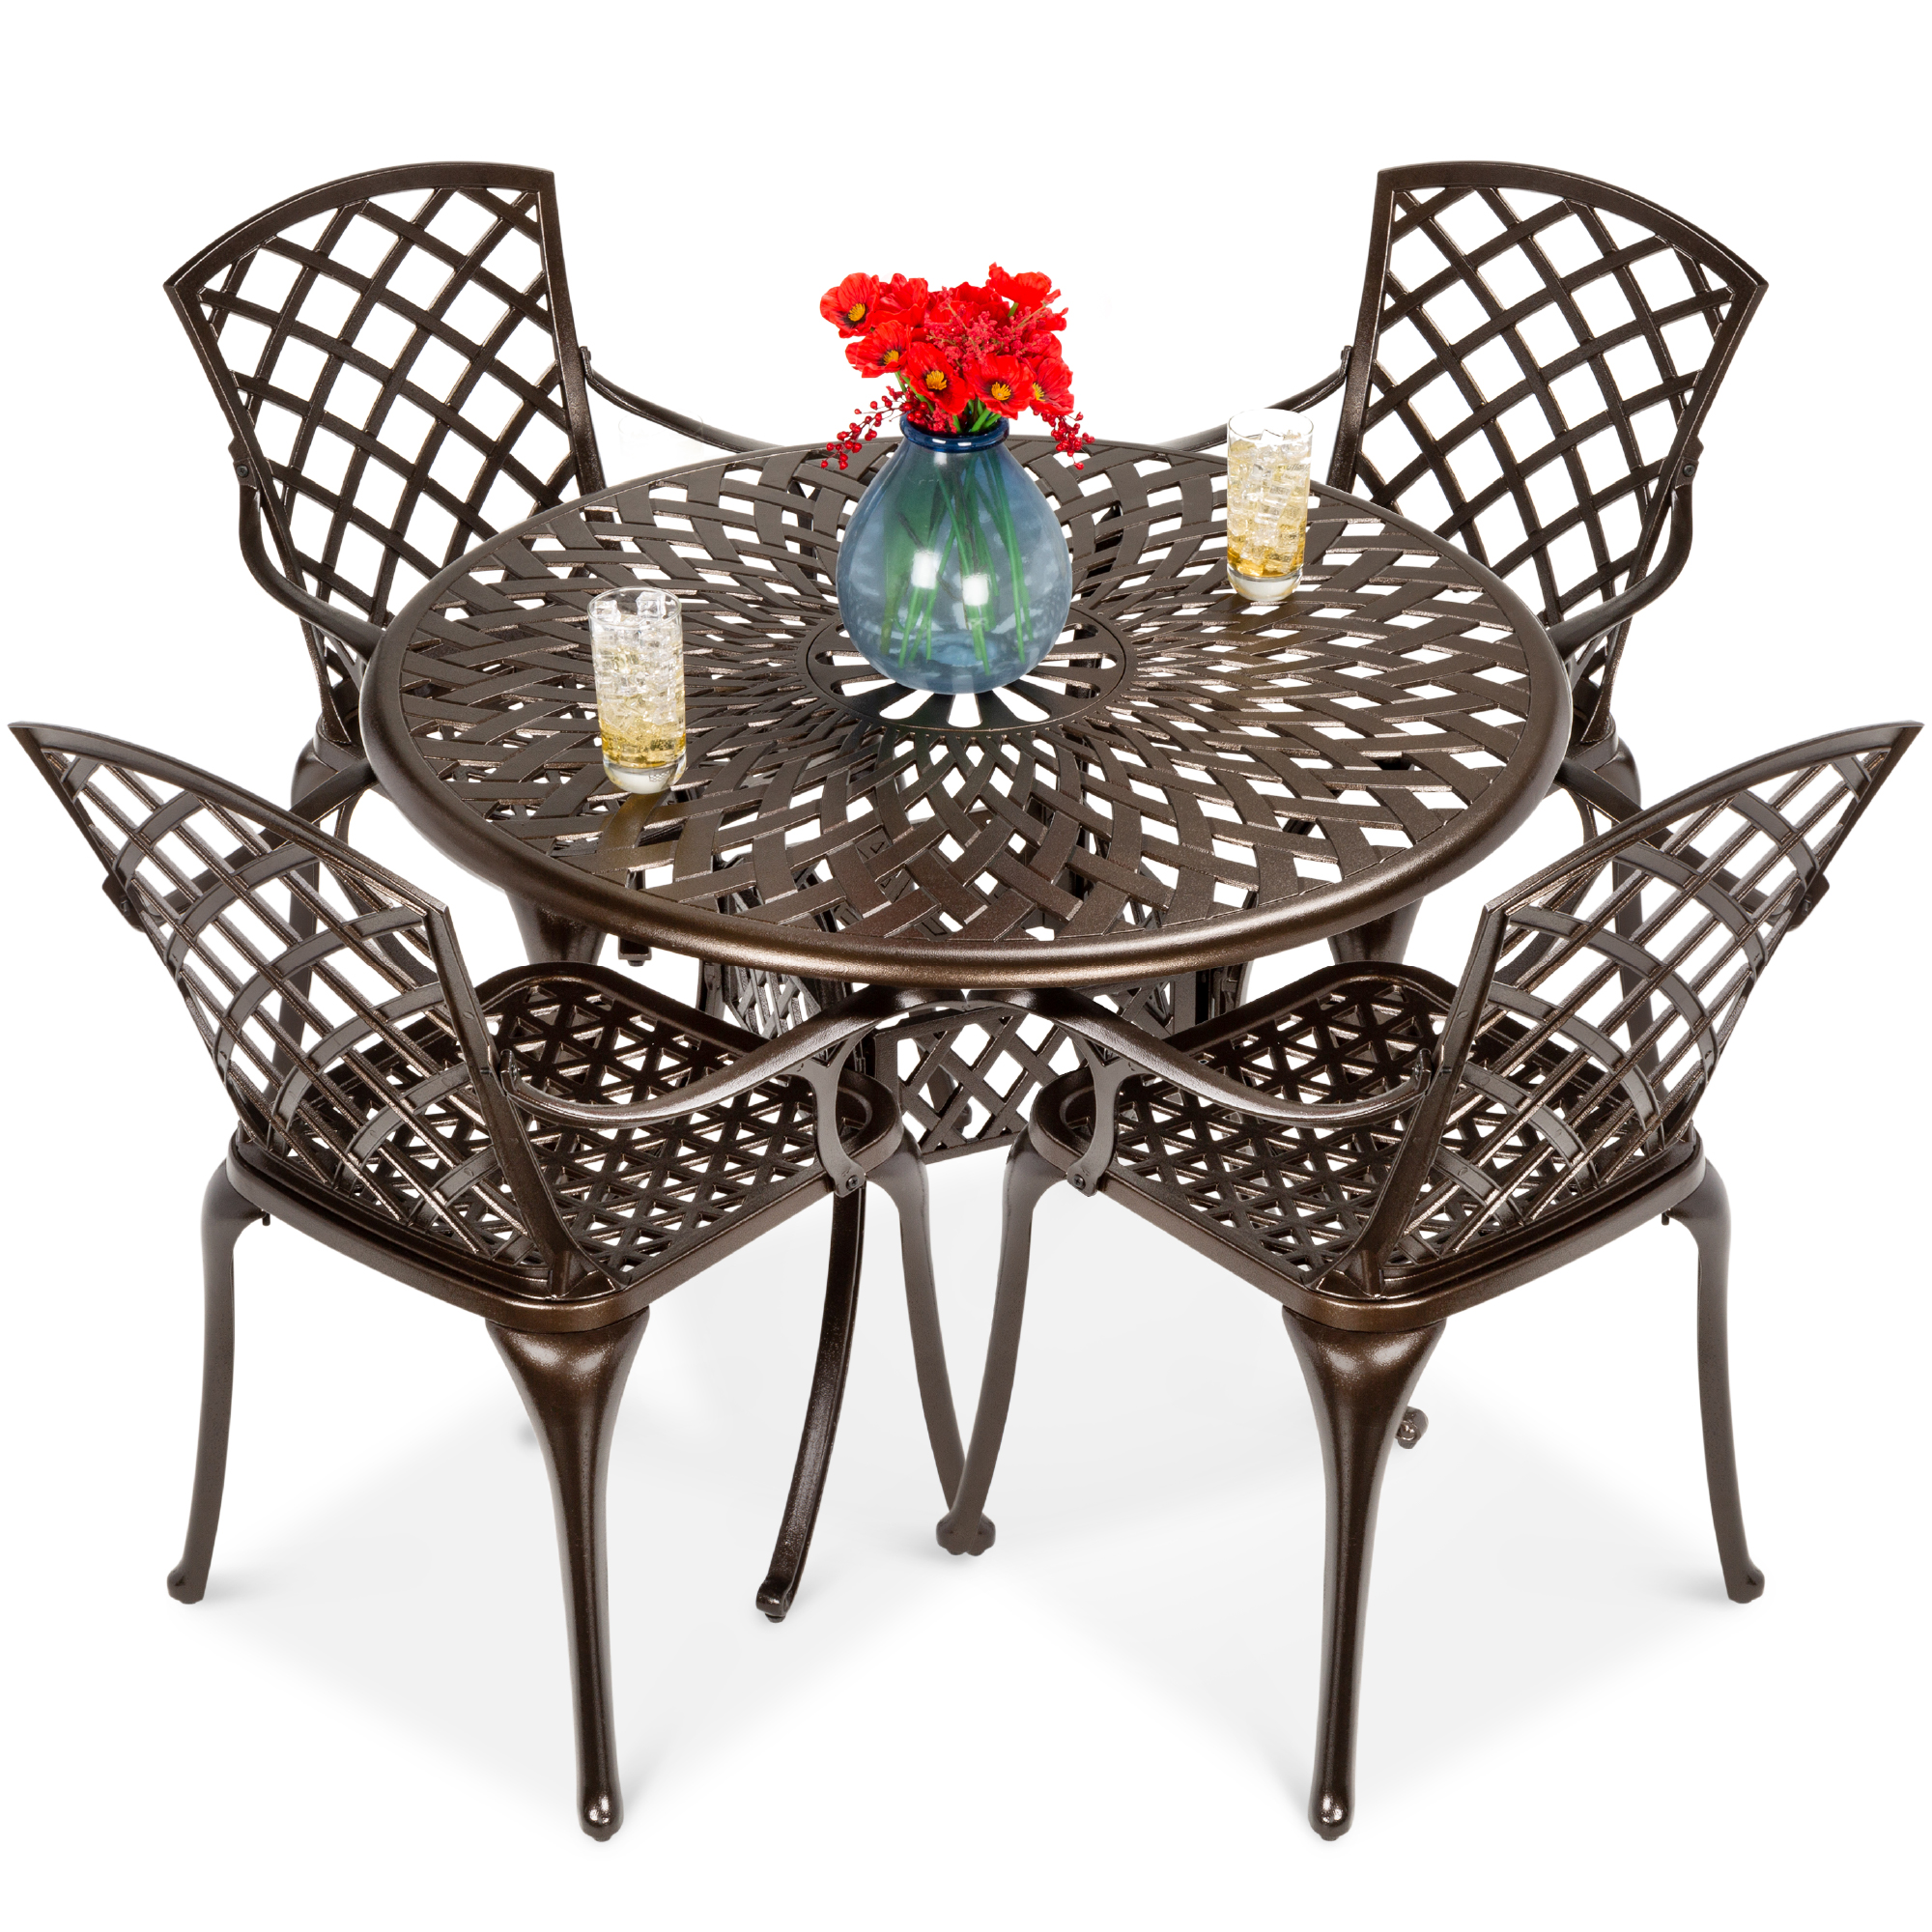 best choice products 5 piece all weather cast aluminum patio dining set w chairs umbrella hole lattice weave design